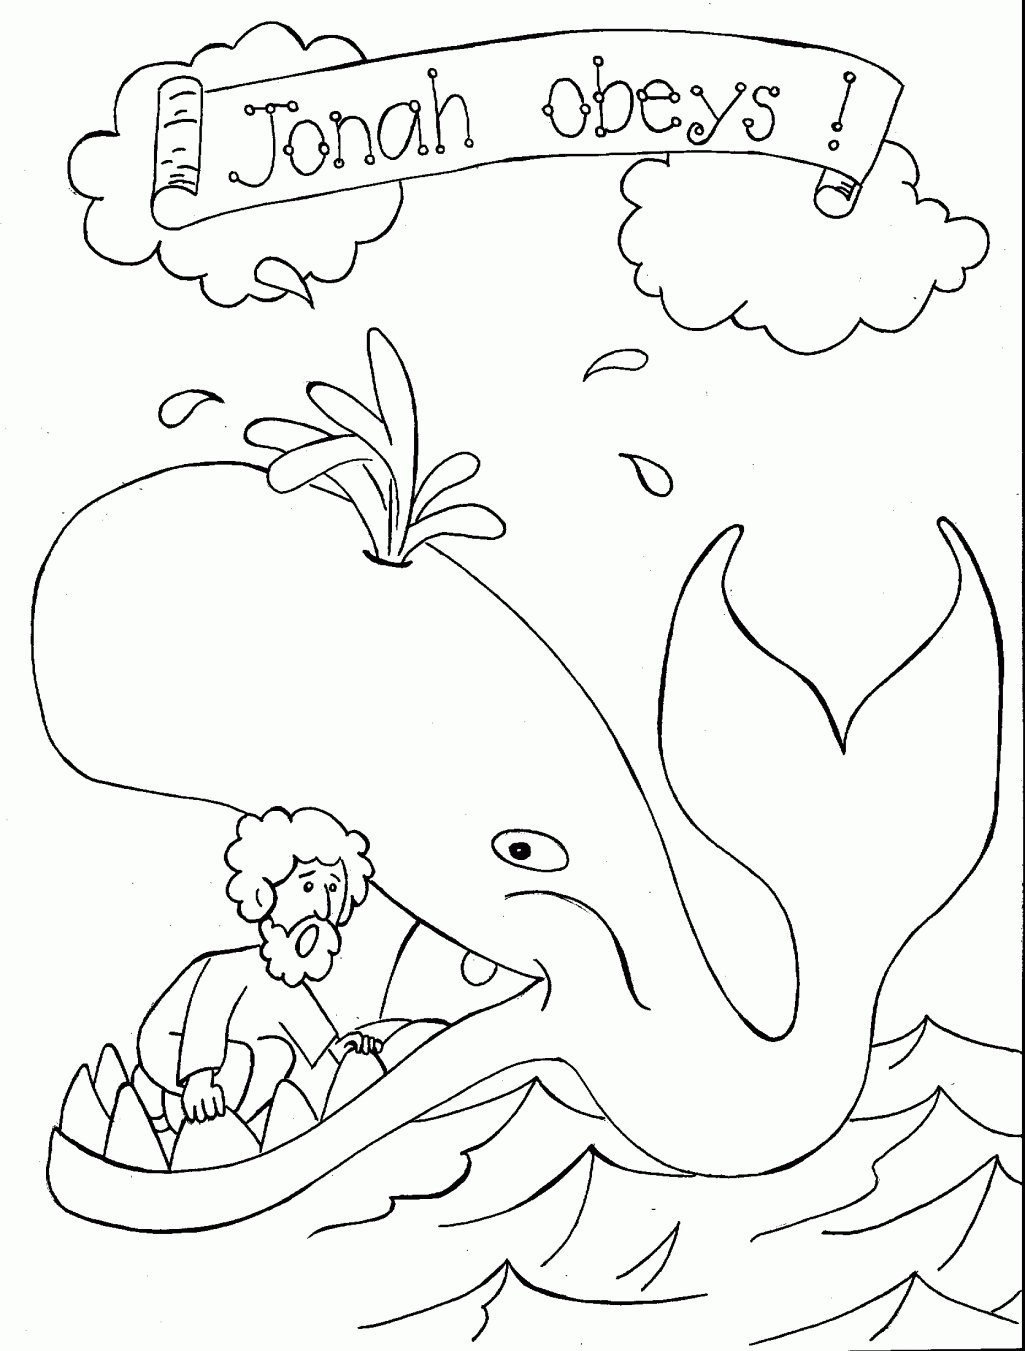 Printable Bible Coloring Pages Within